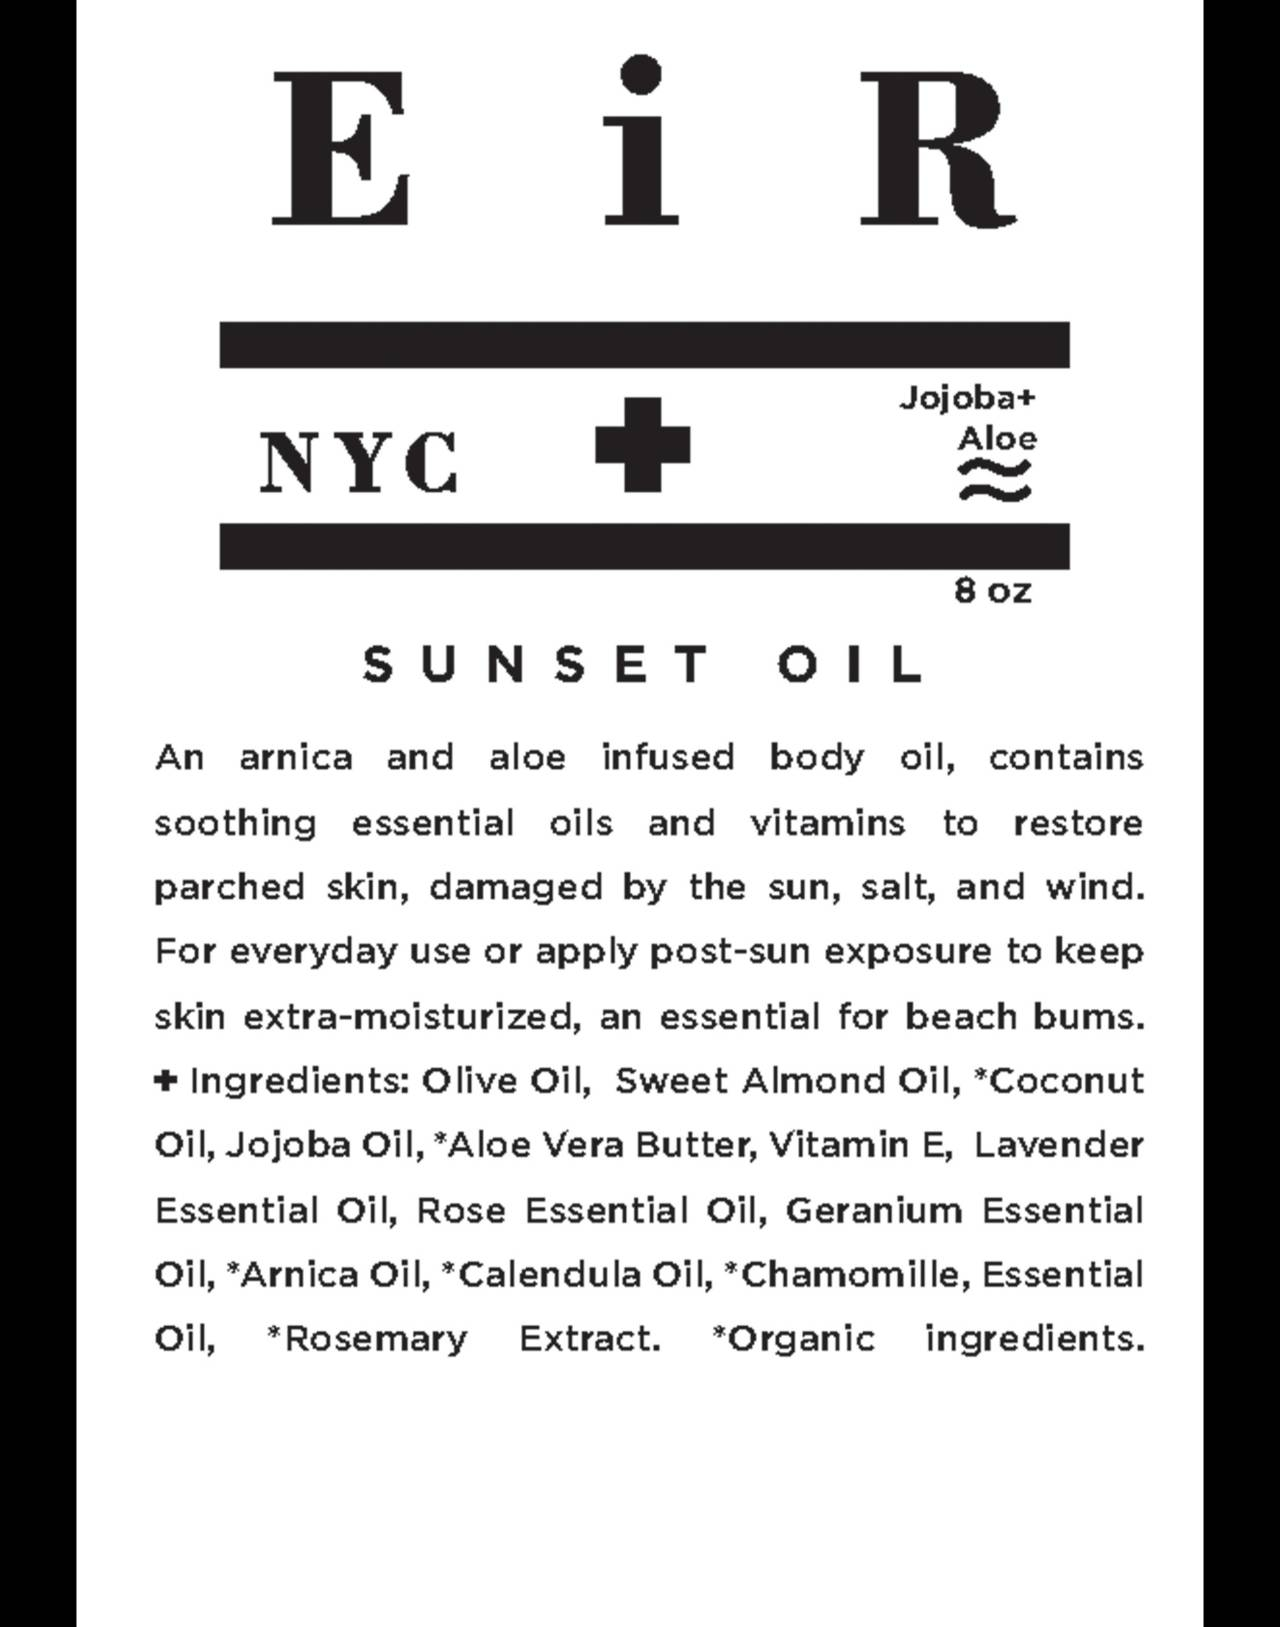 Eir NYC® Sunset Body Oil in one color image 2